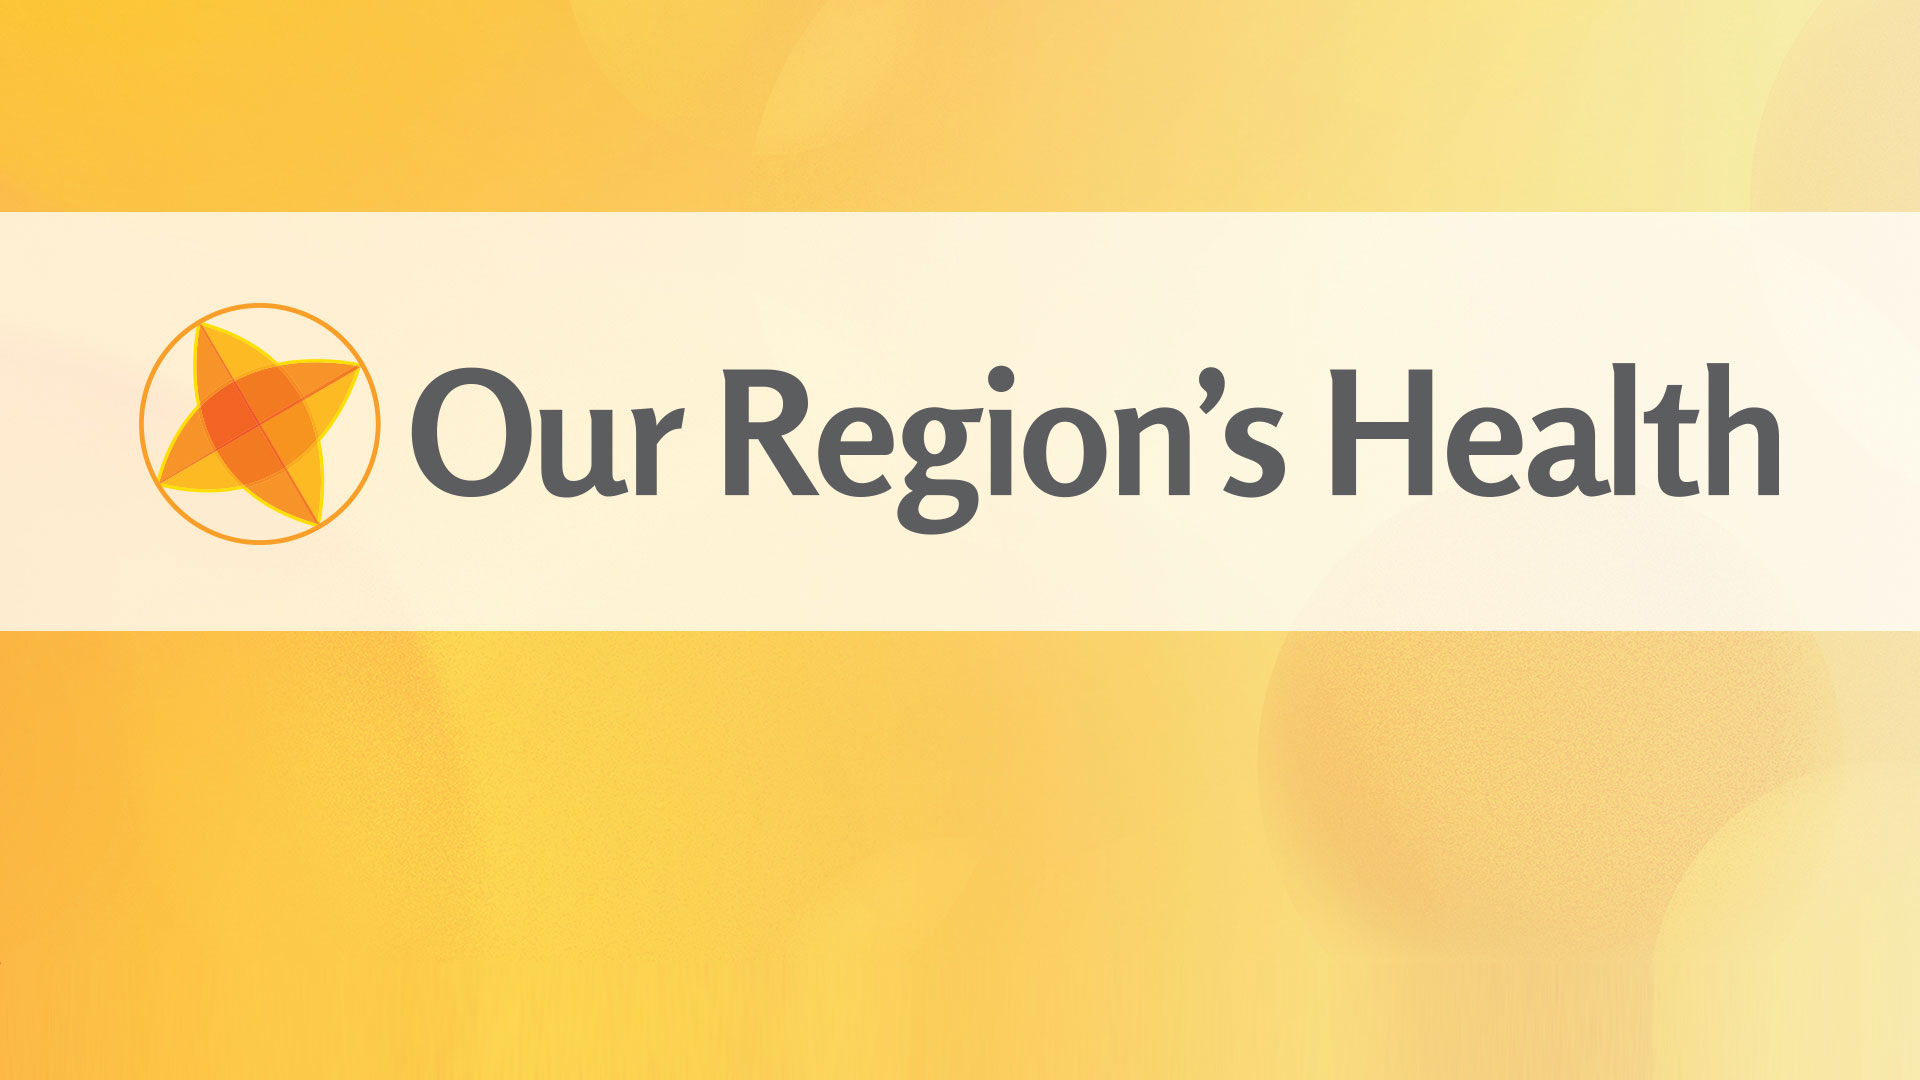 Our Region's Health